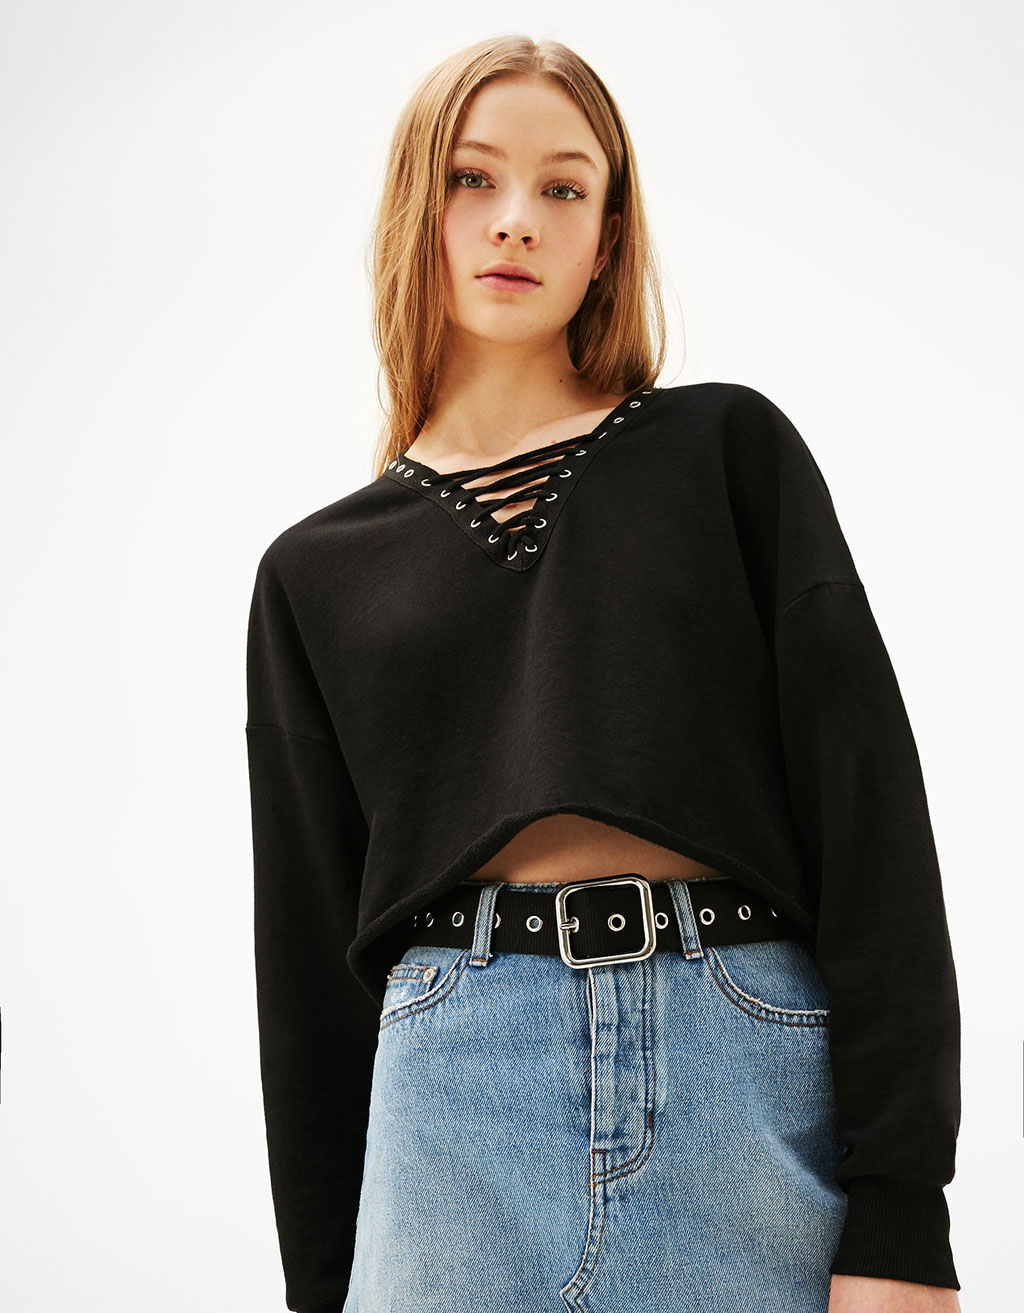 Cropped V-neck sweater with cord on the neckline